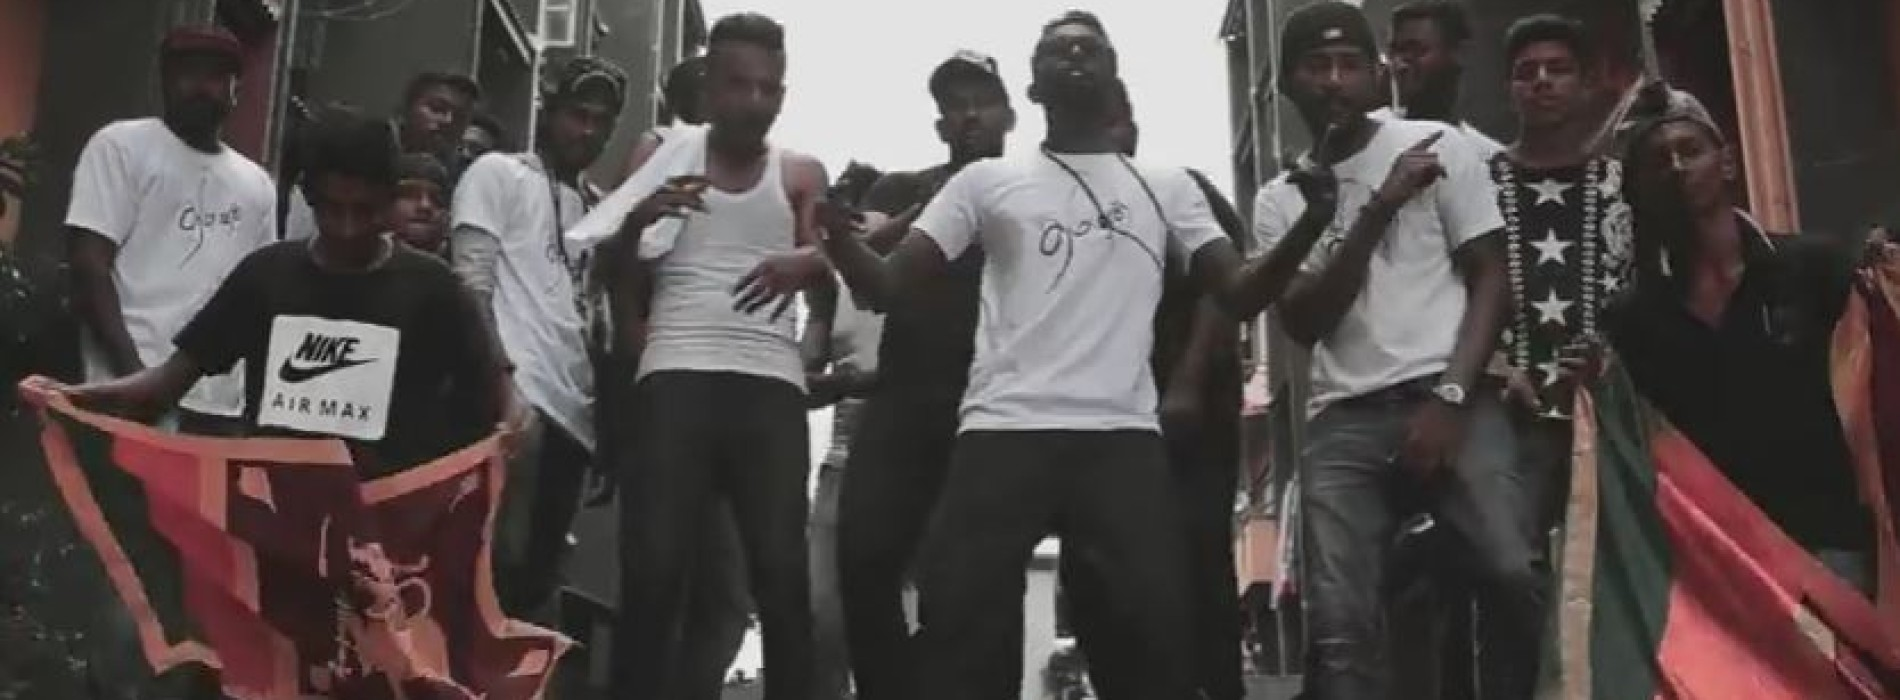 The Biggest Tamil Rap Cypher Is Here